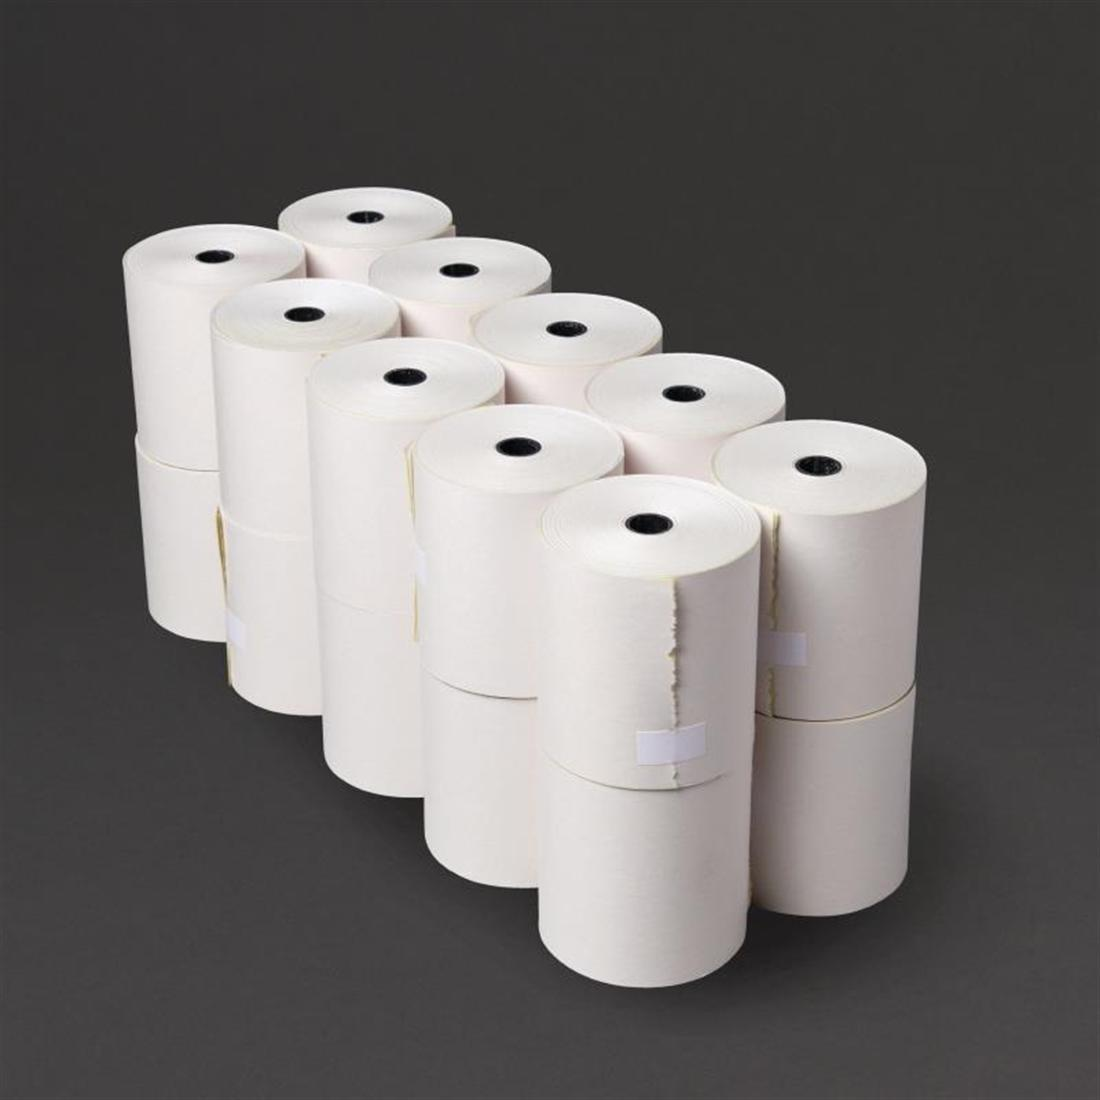 Fiesta Non-Thermal 2ply White and Yellow Till Roll 76mm x 70mm